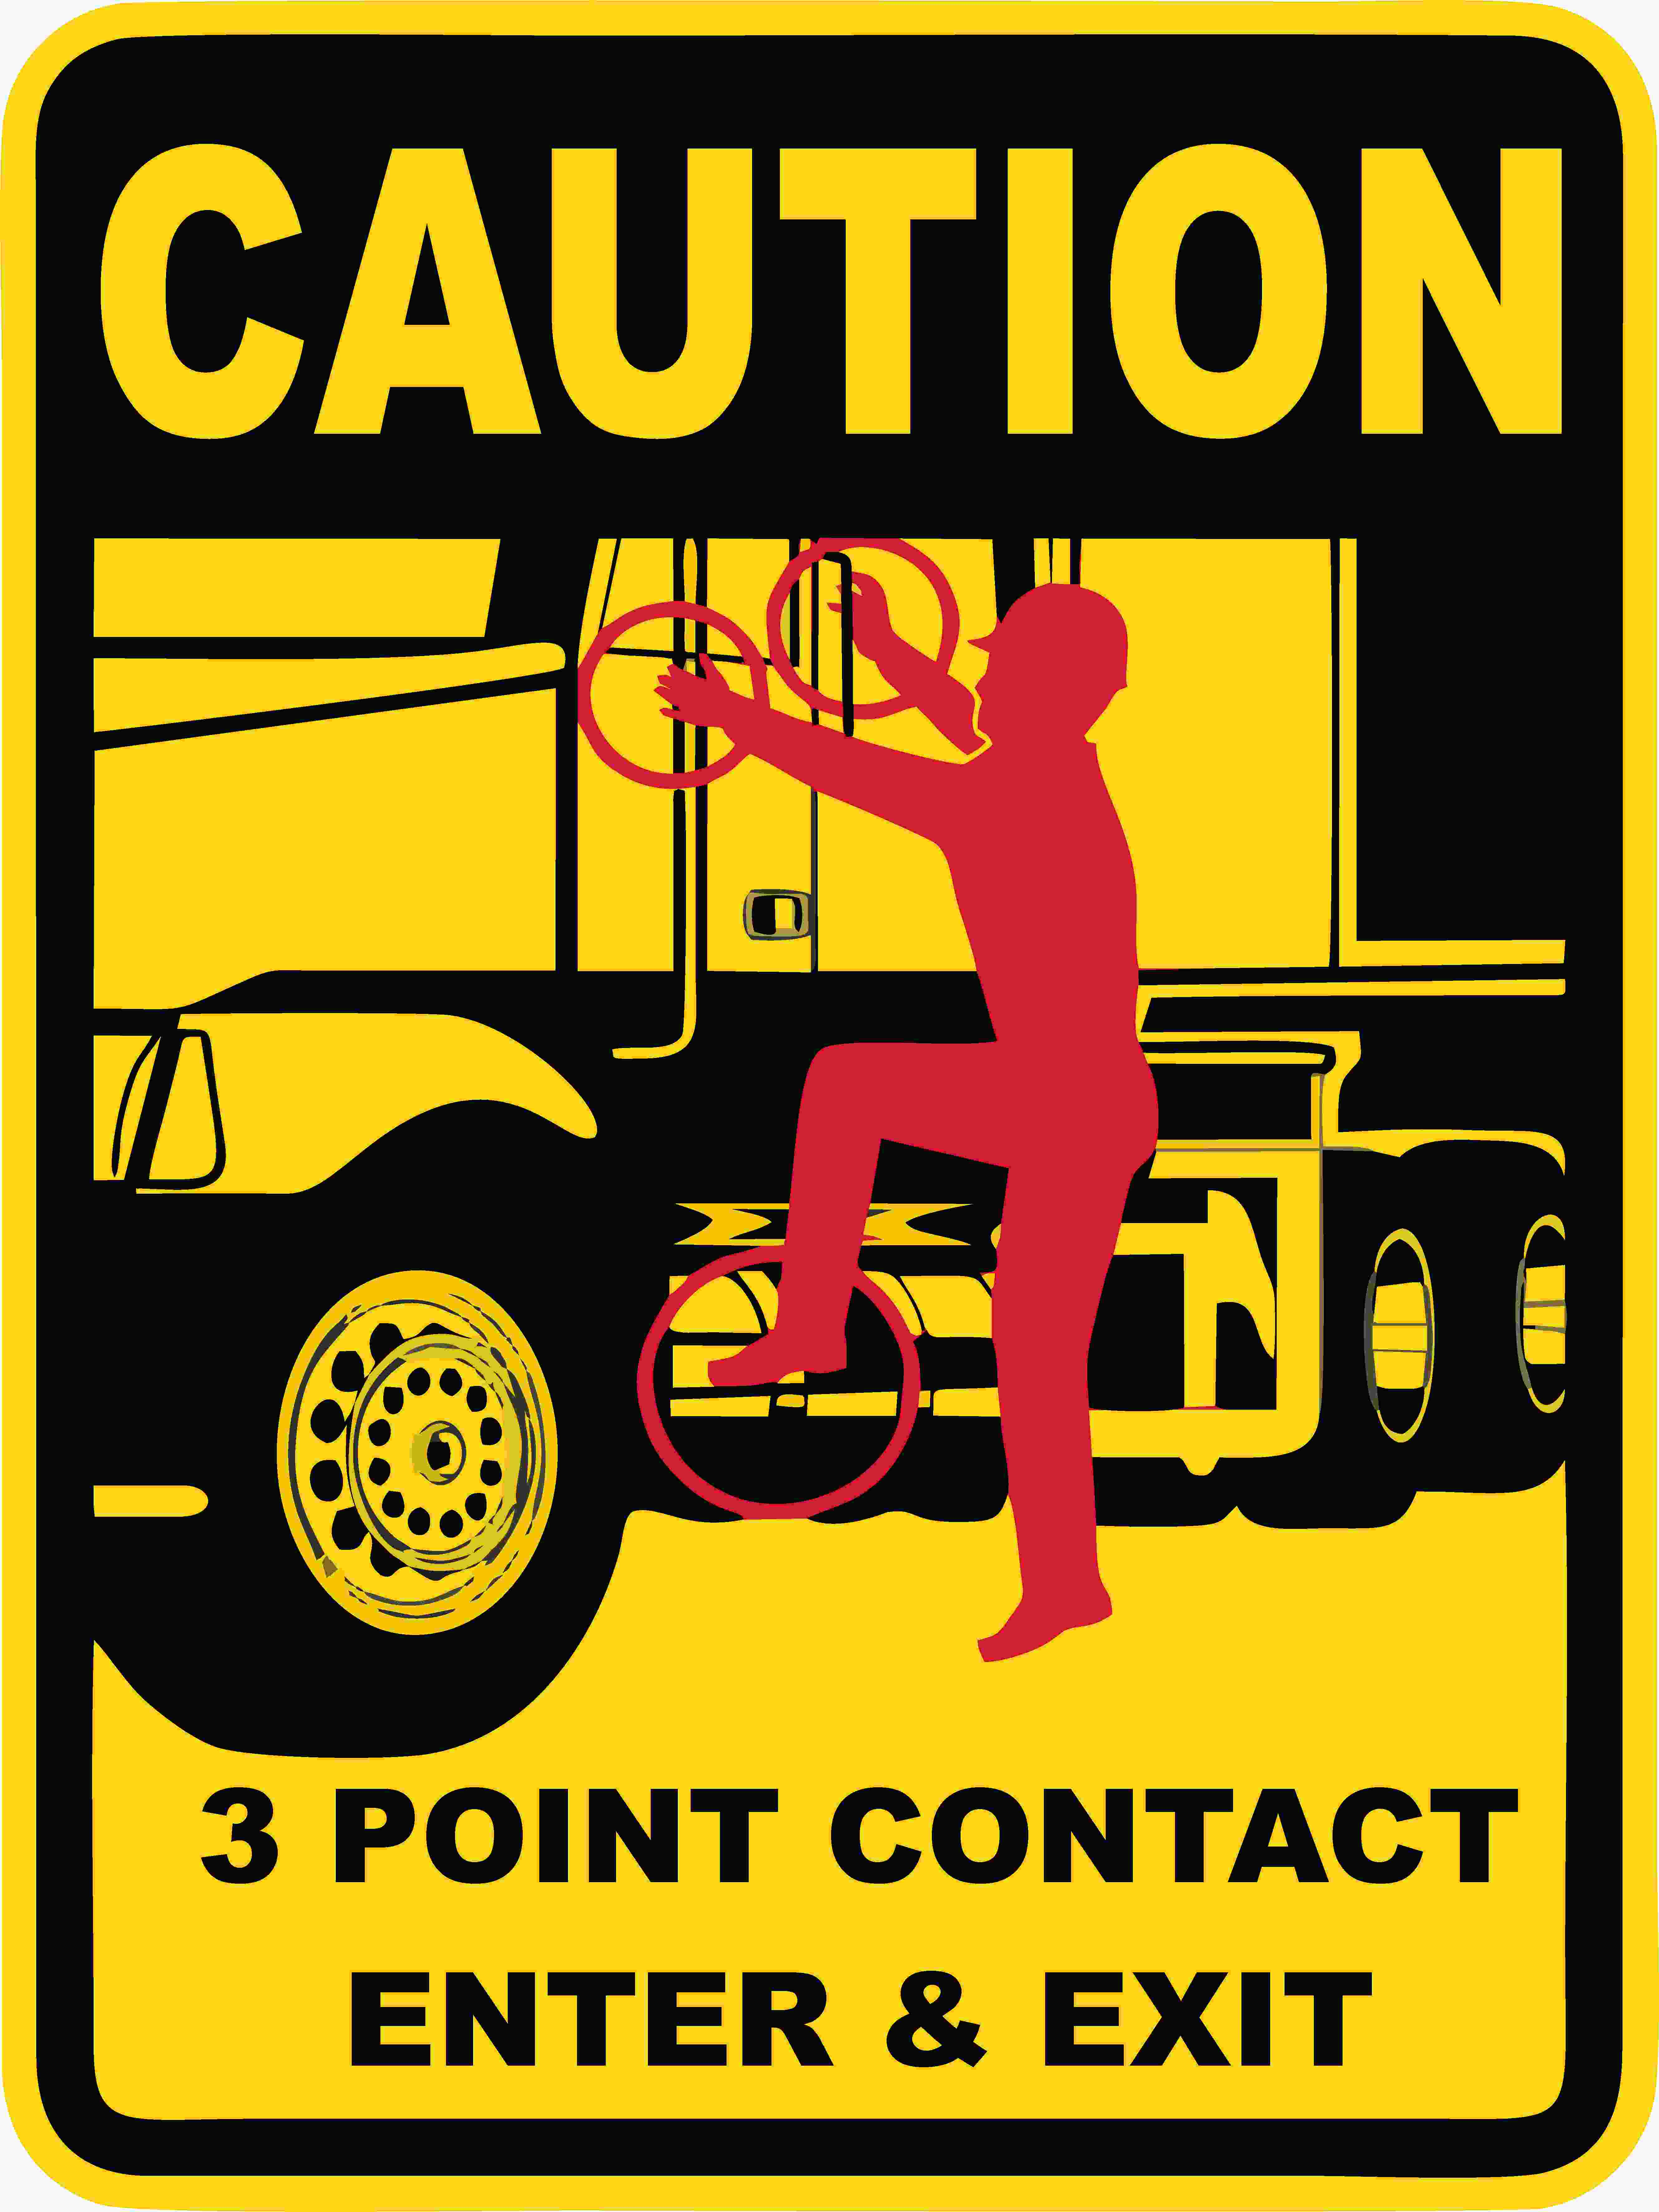 Warning Signs 3 POINT CONTACT ENTER & EXIT